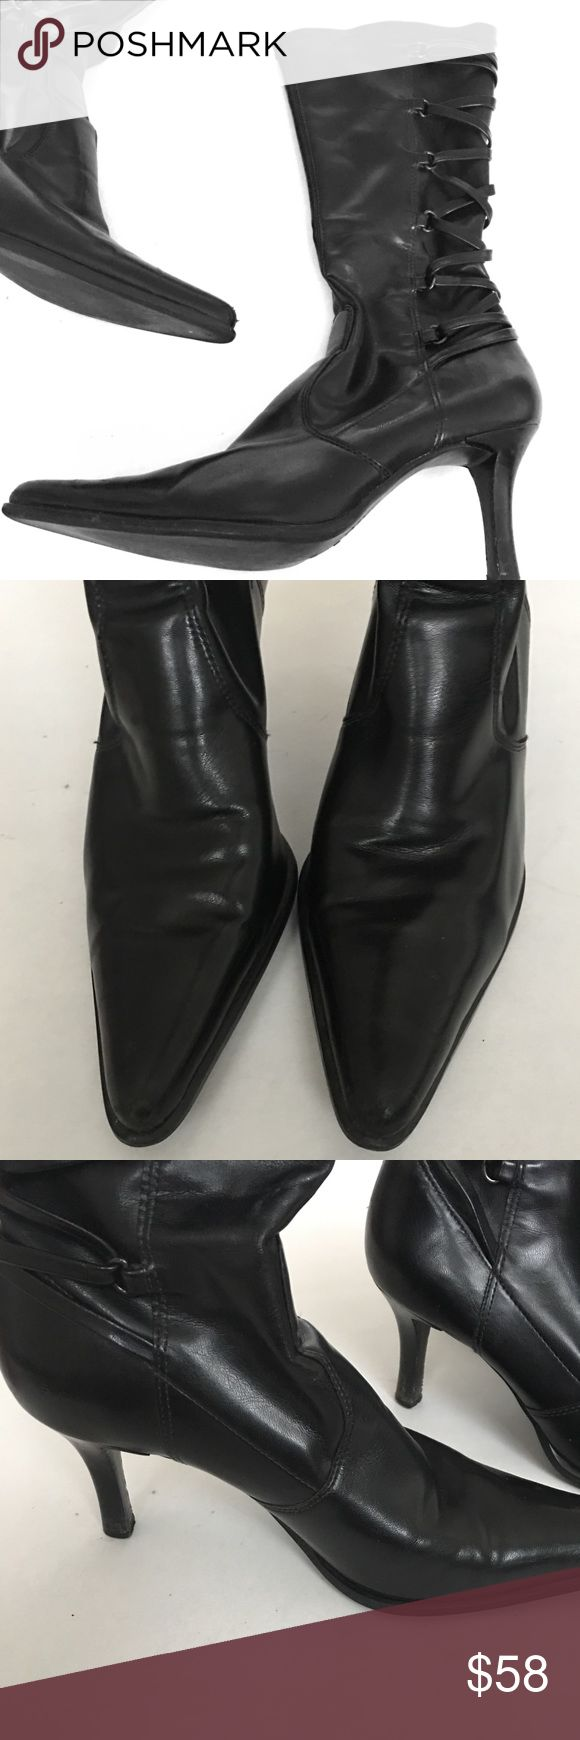 Franco Sarto Heeled Boots Beautiful boots with lace up style calves & pointed toes. Great condition! Franco Sarto Shoes Heeled Boots